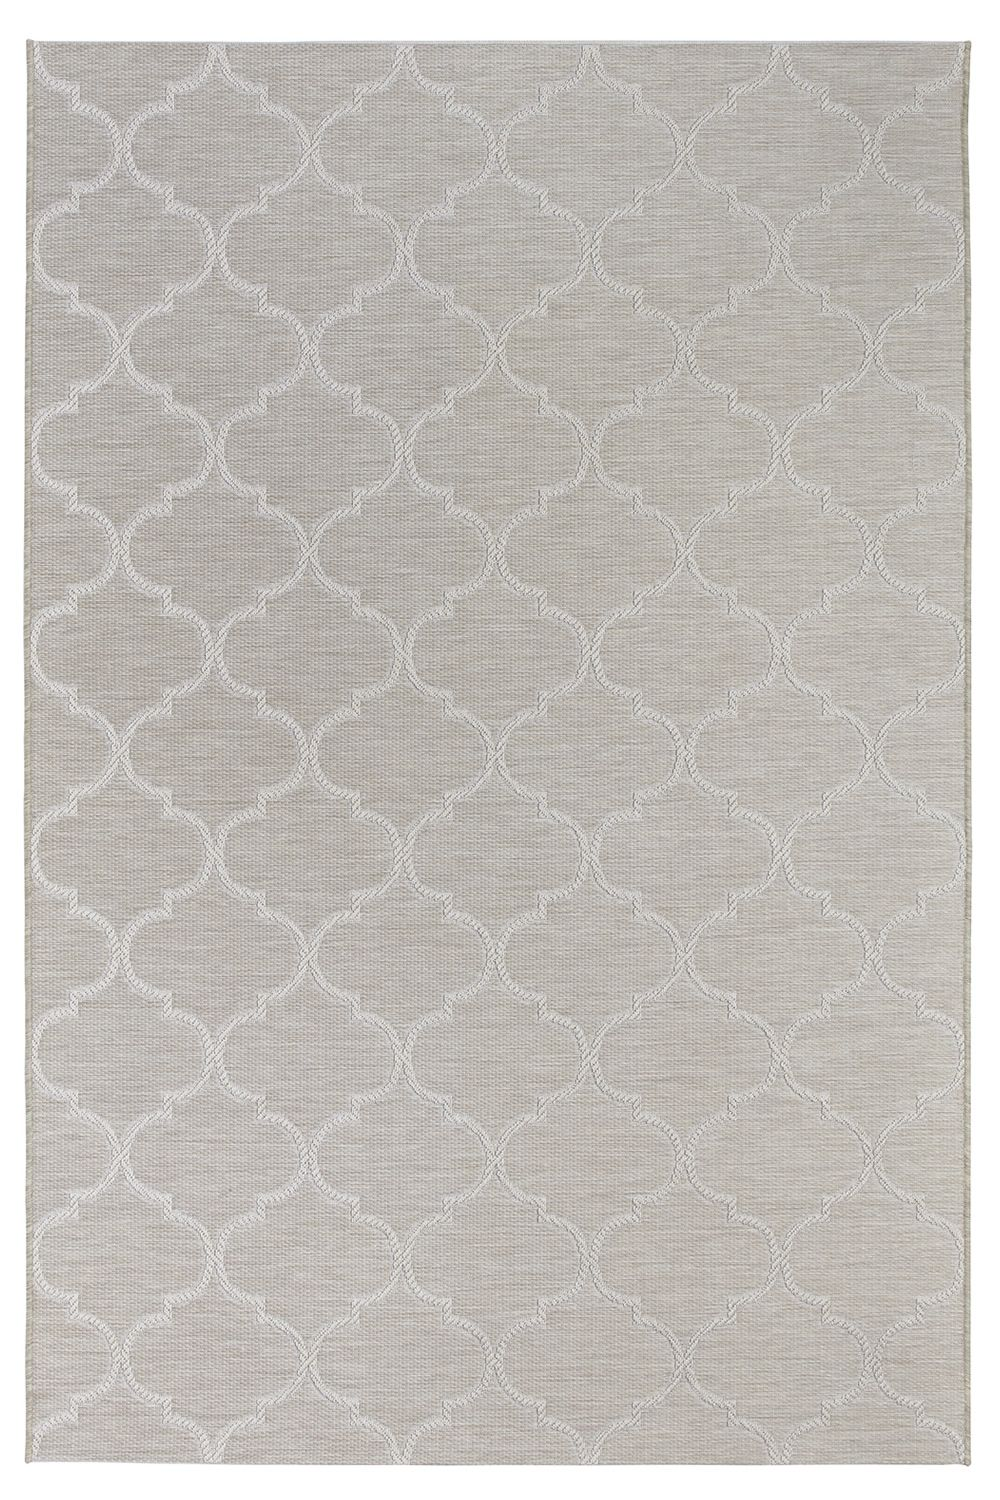 Outdoor rug, in cream white colour